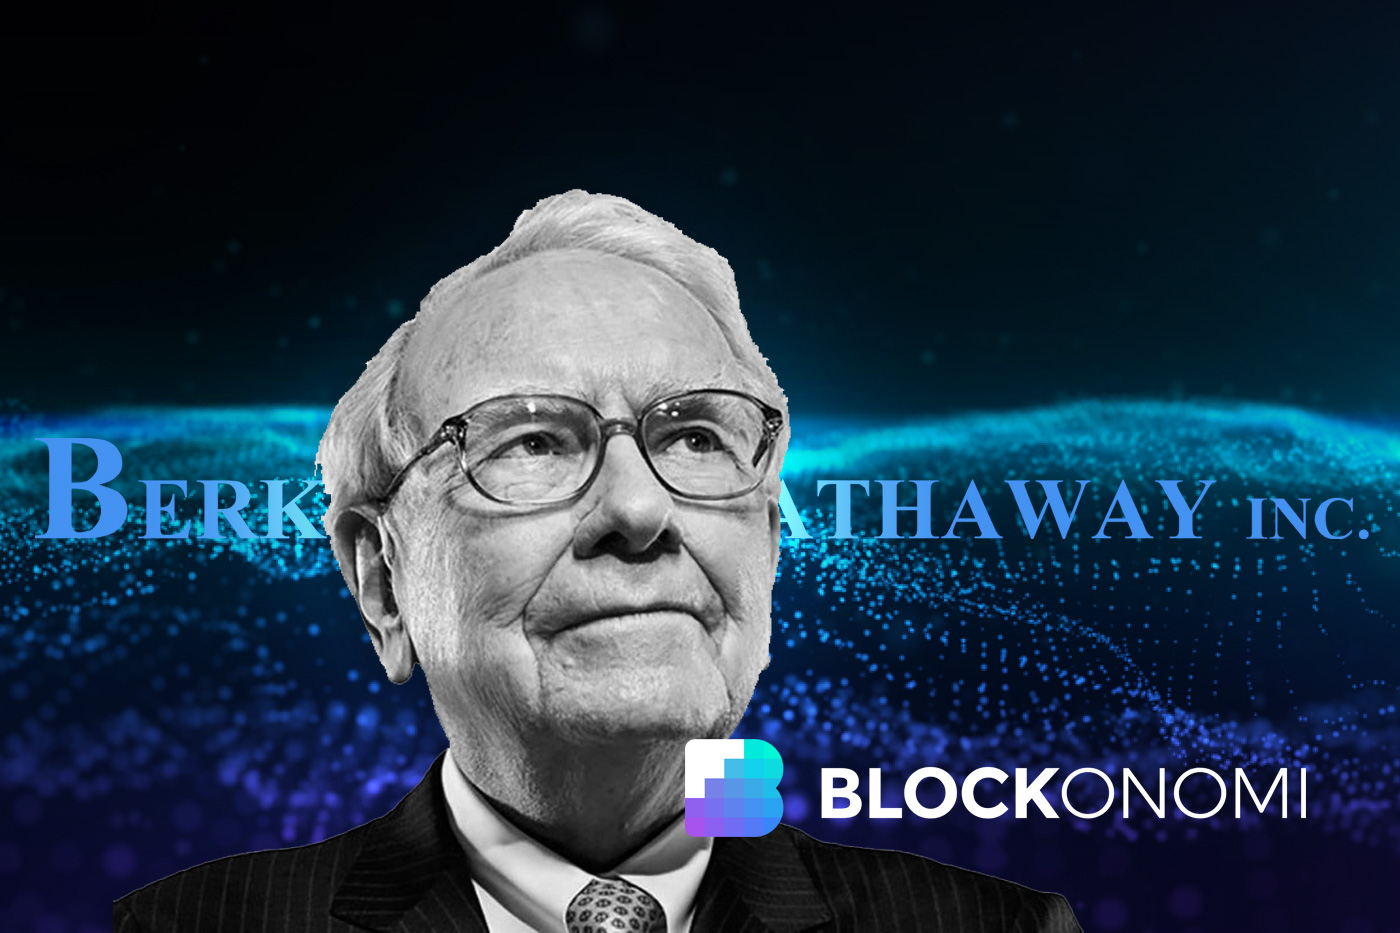 how good are the cryptocurrencies warren buffet